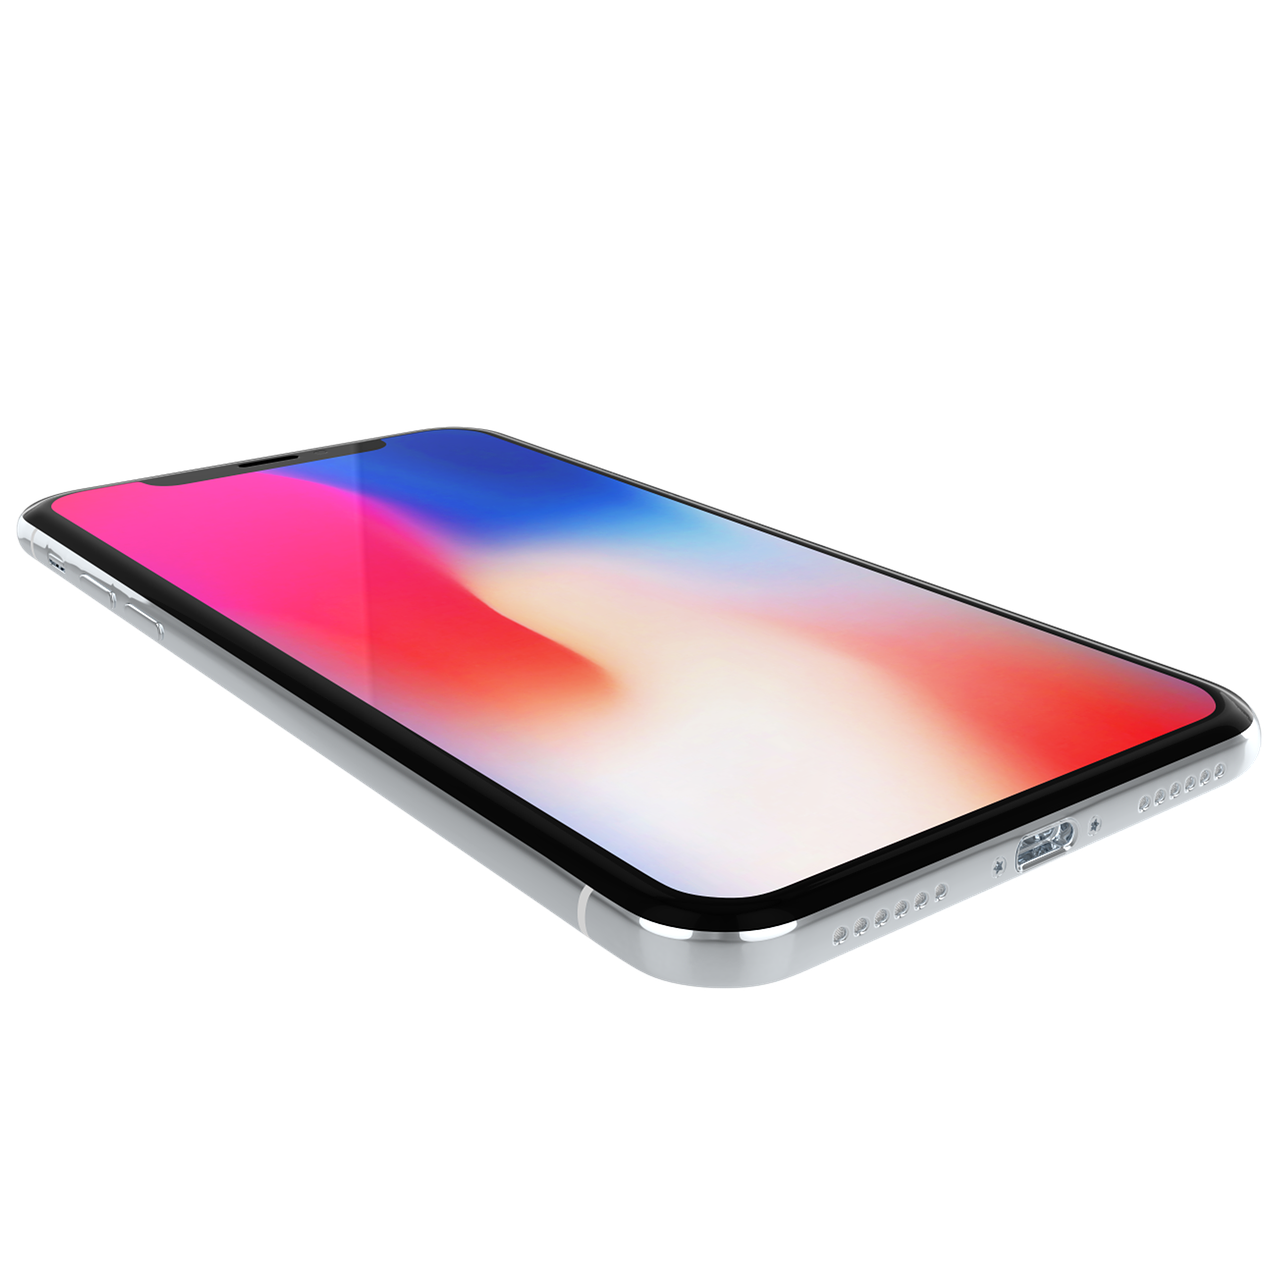 If you are Owner the Owner of iPhone X and wondering How